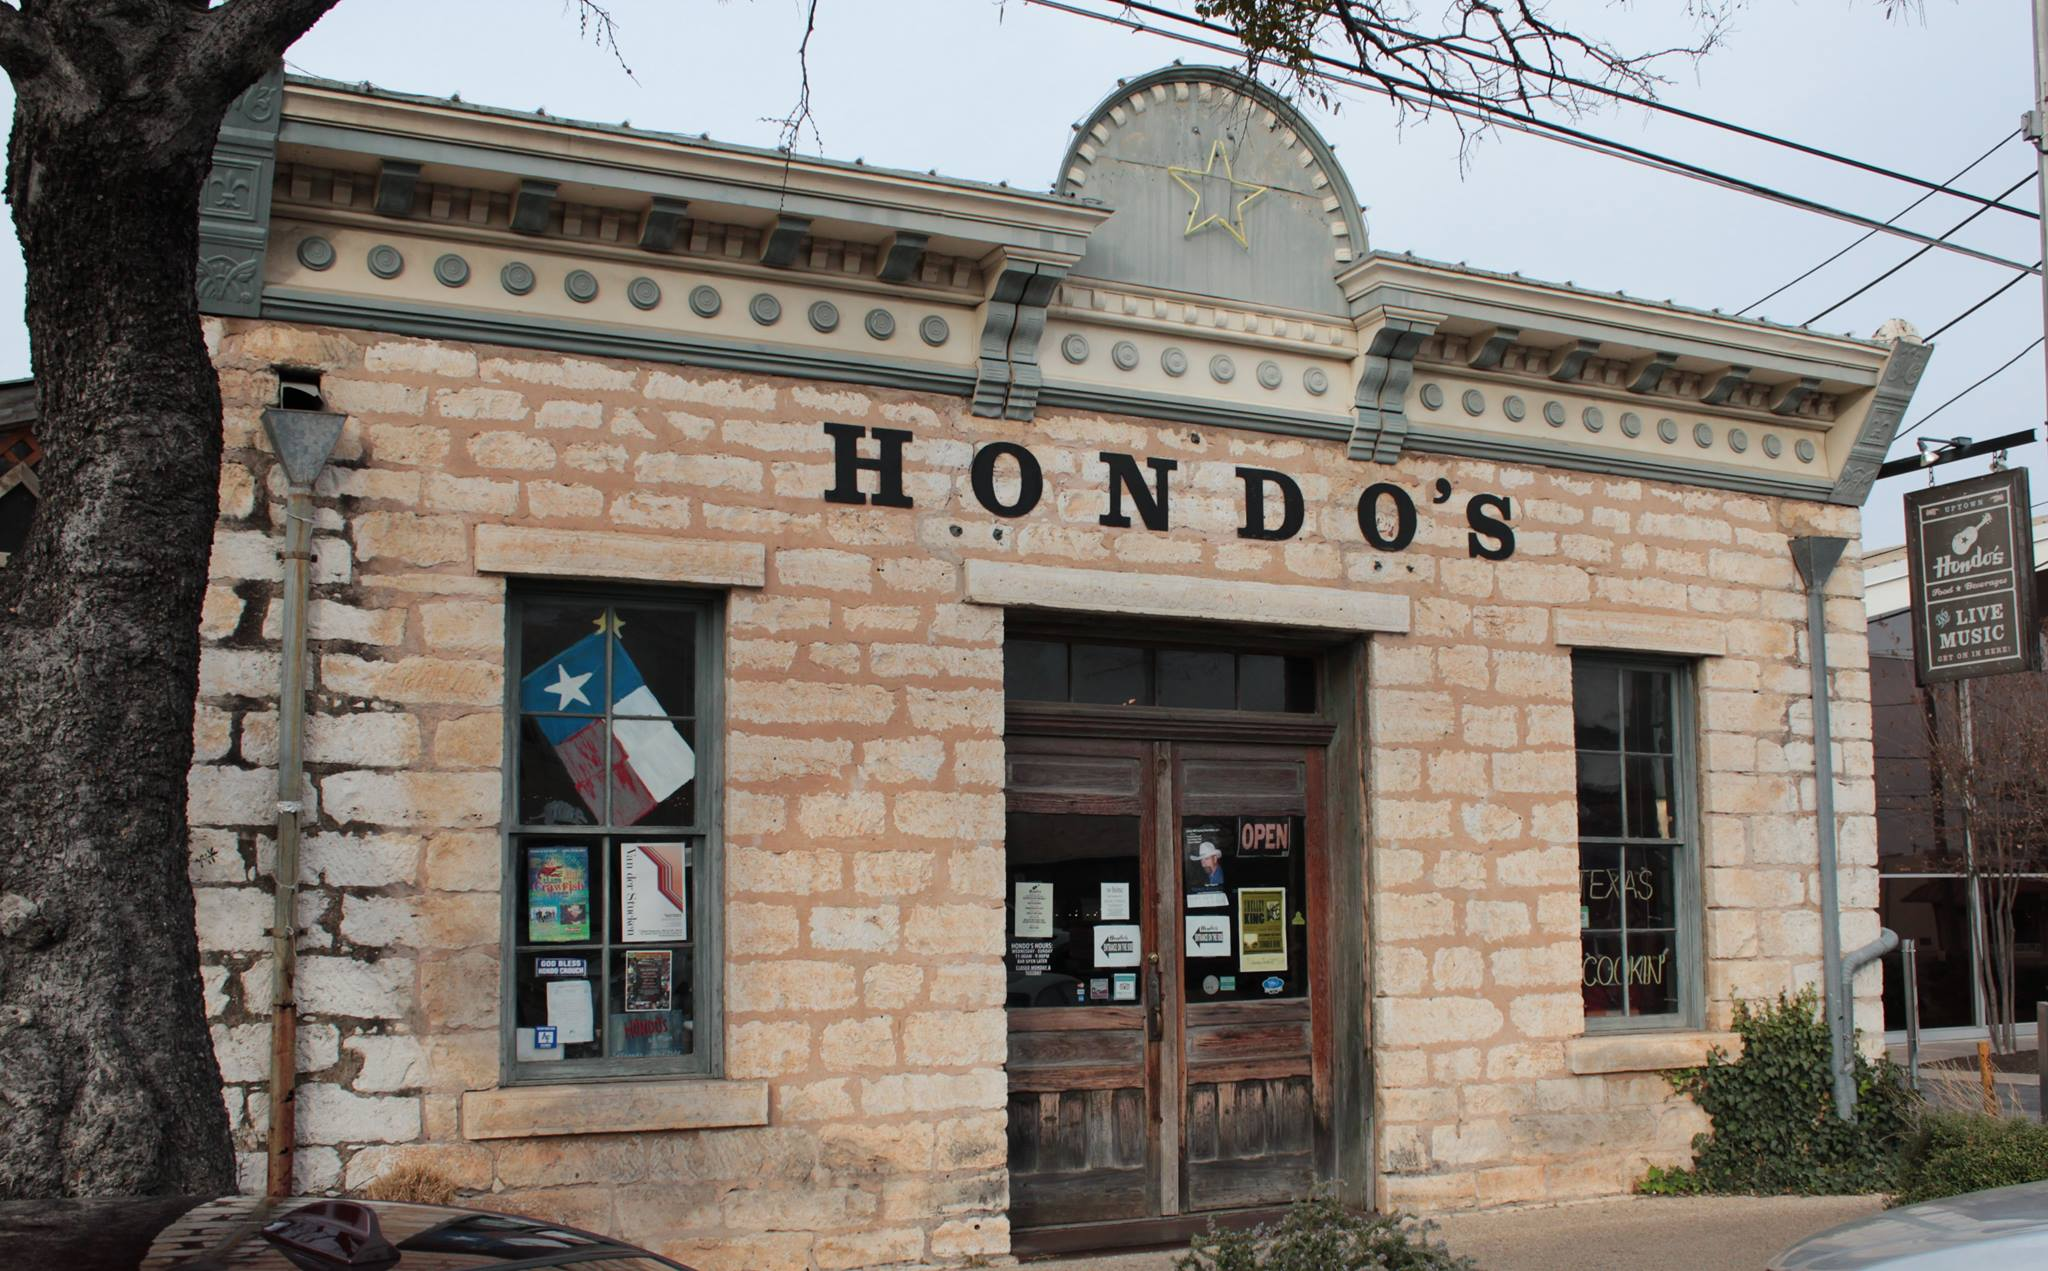 Hondos Fredericksburg Tx >> Austin.com 10 Perfect Places for Great Dates: Day Trip Edition